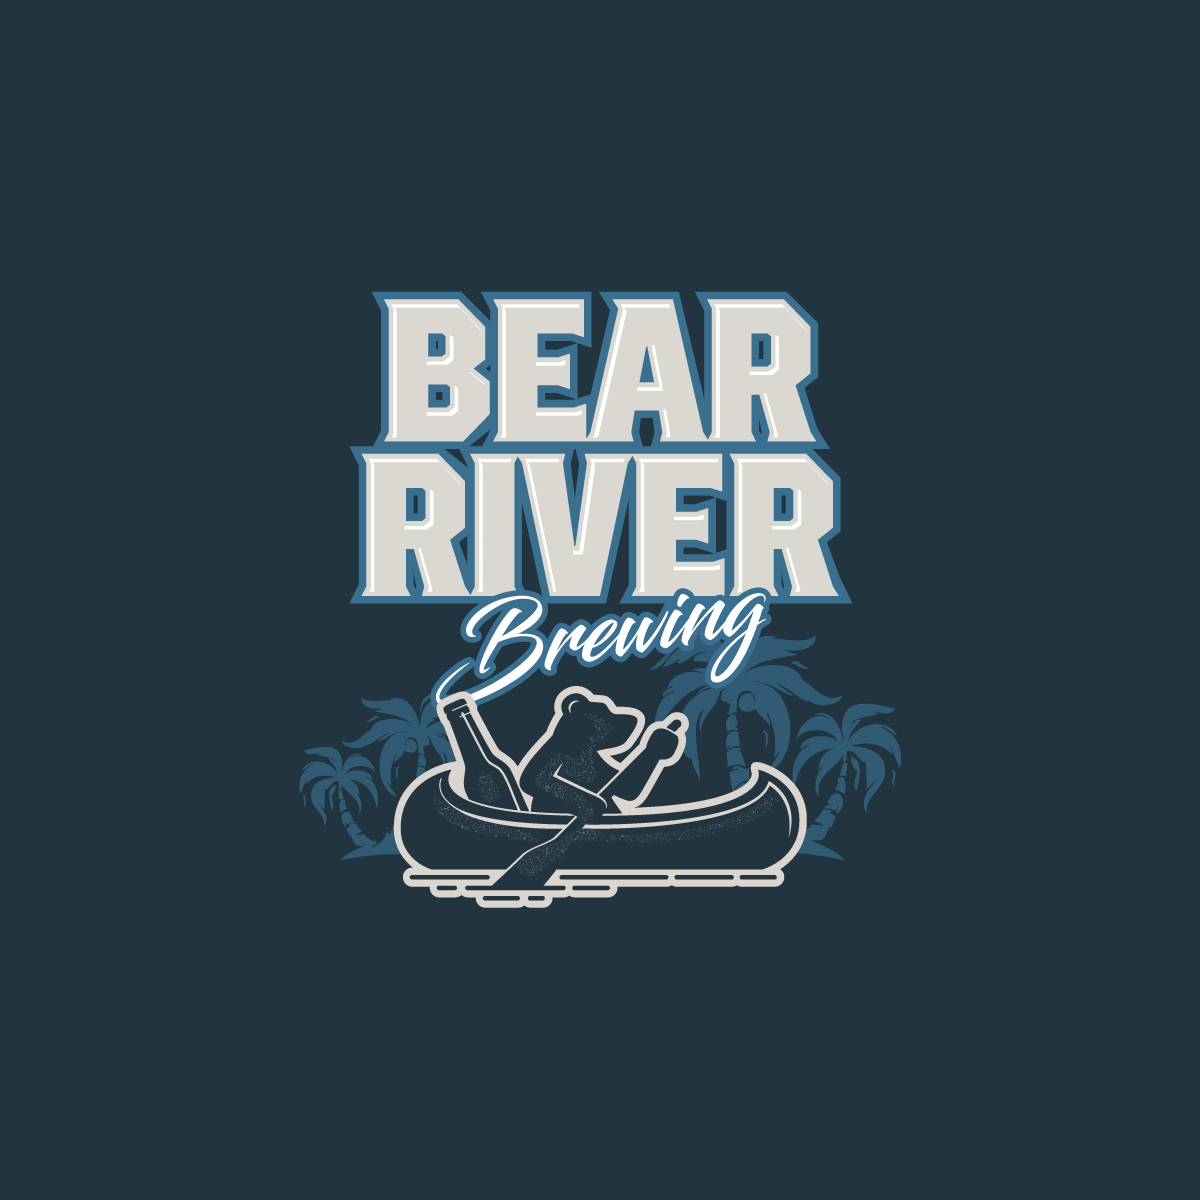 Bear River Brewing Logo Design 3